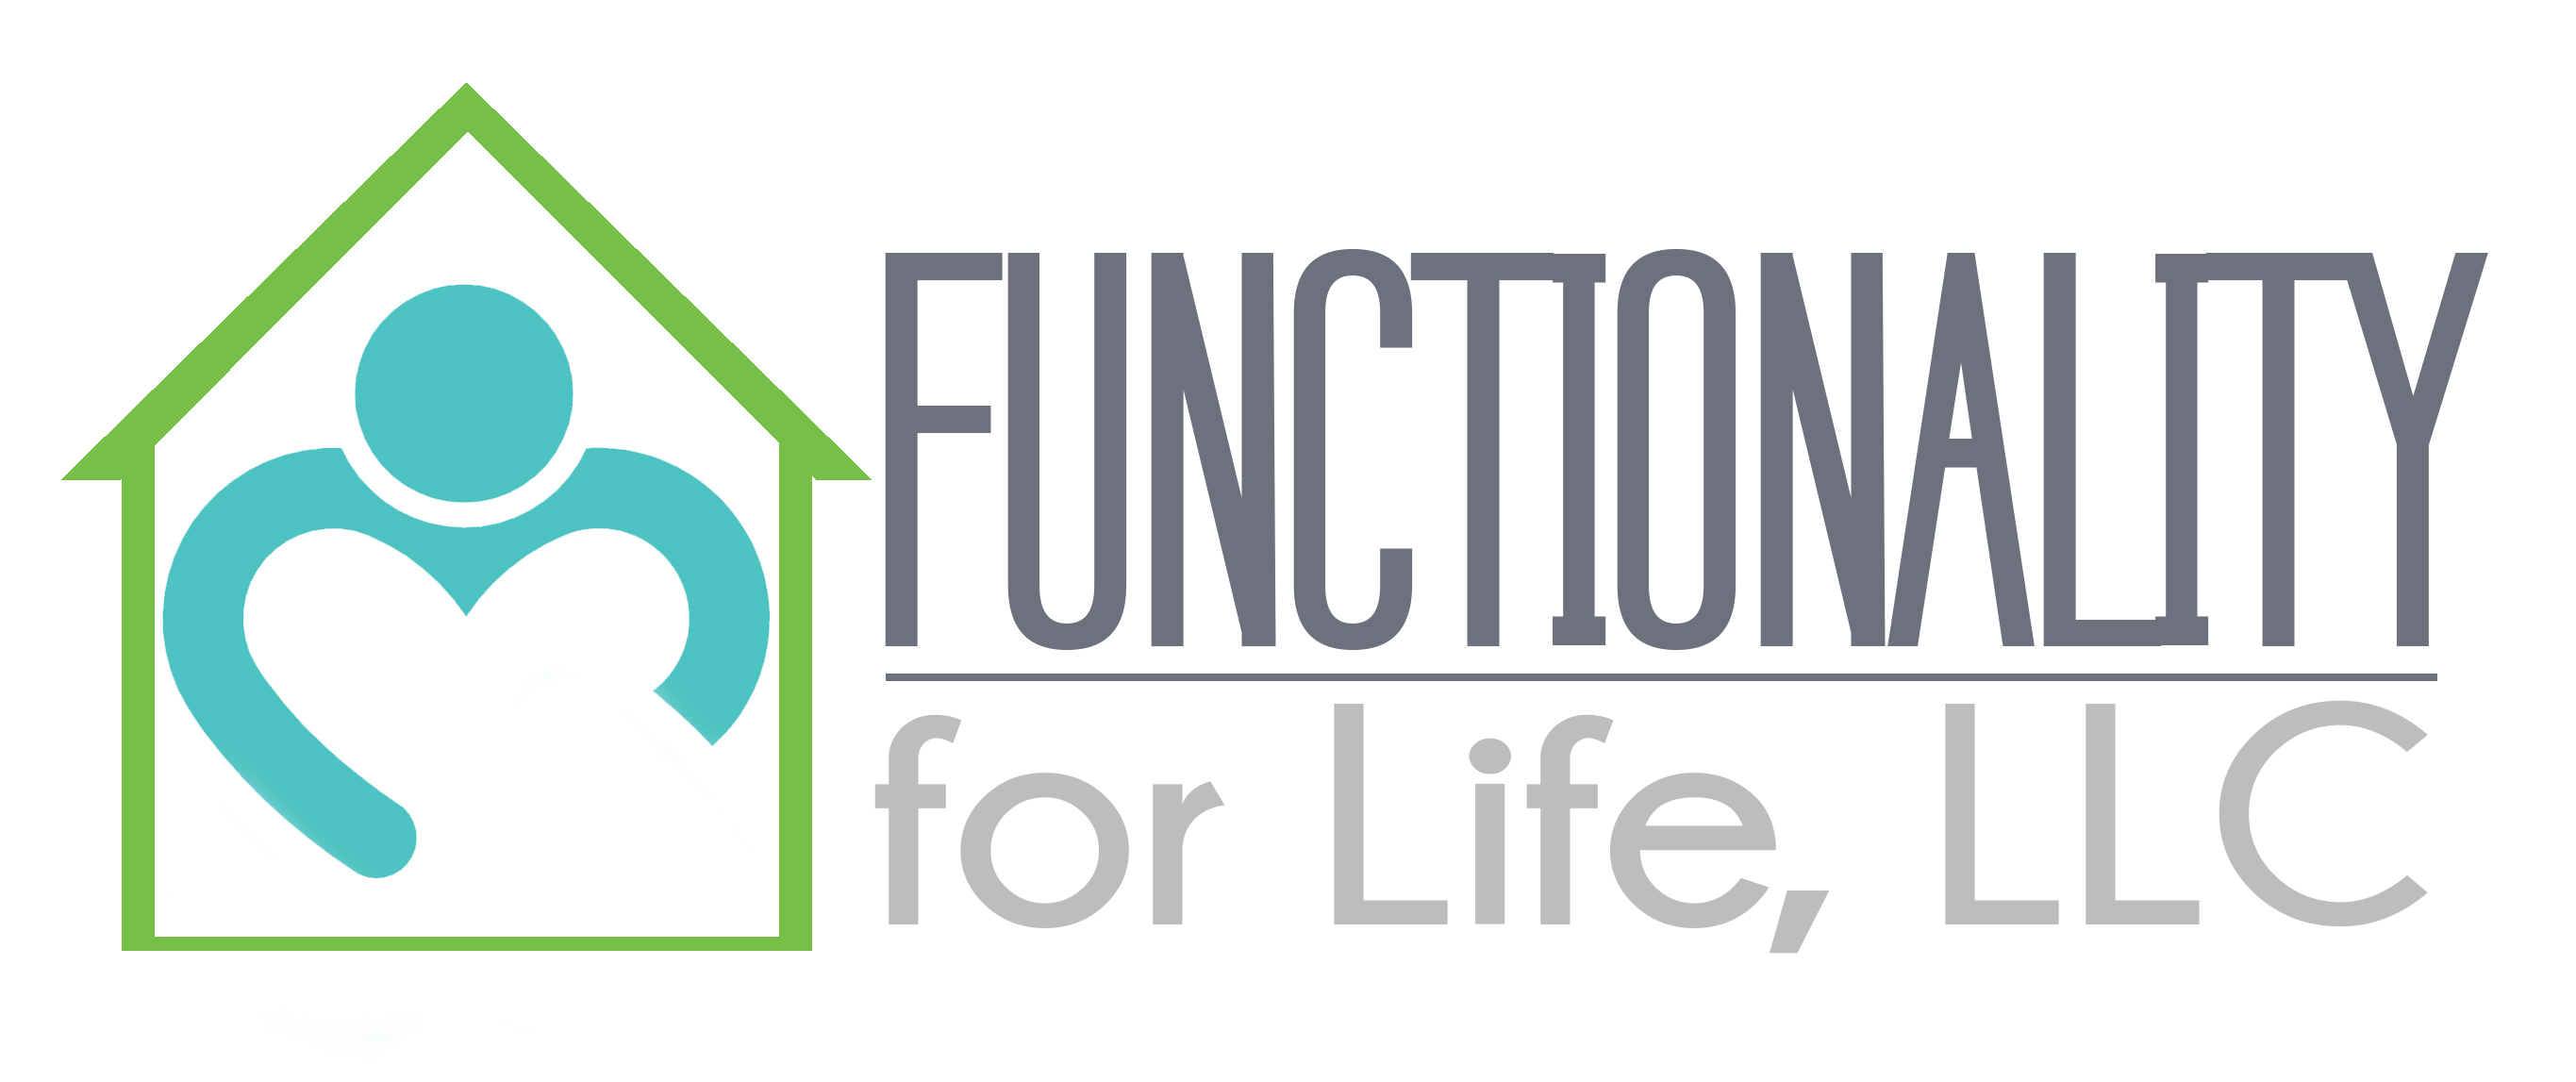 Functionality for Life, LLC